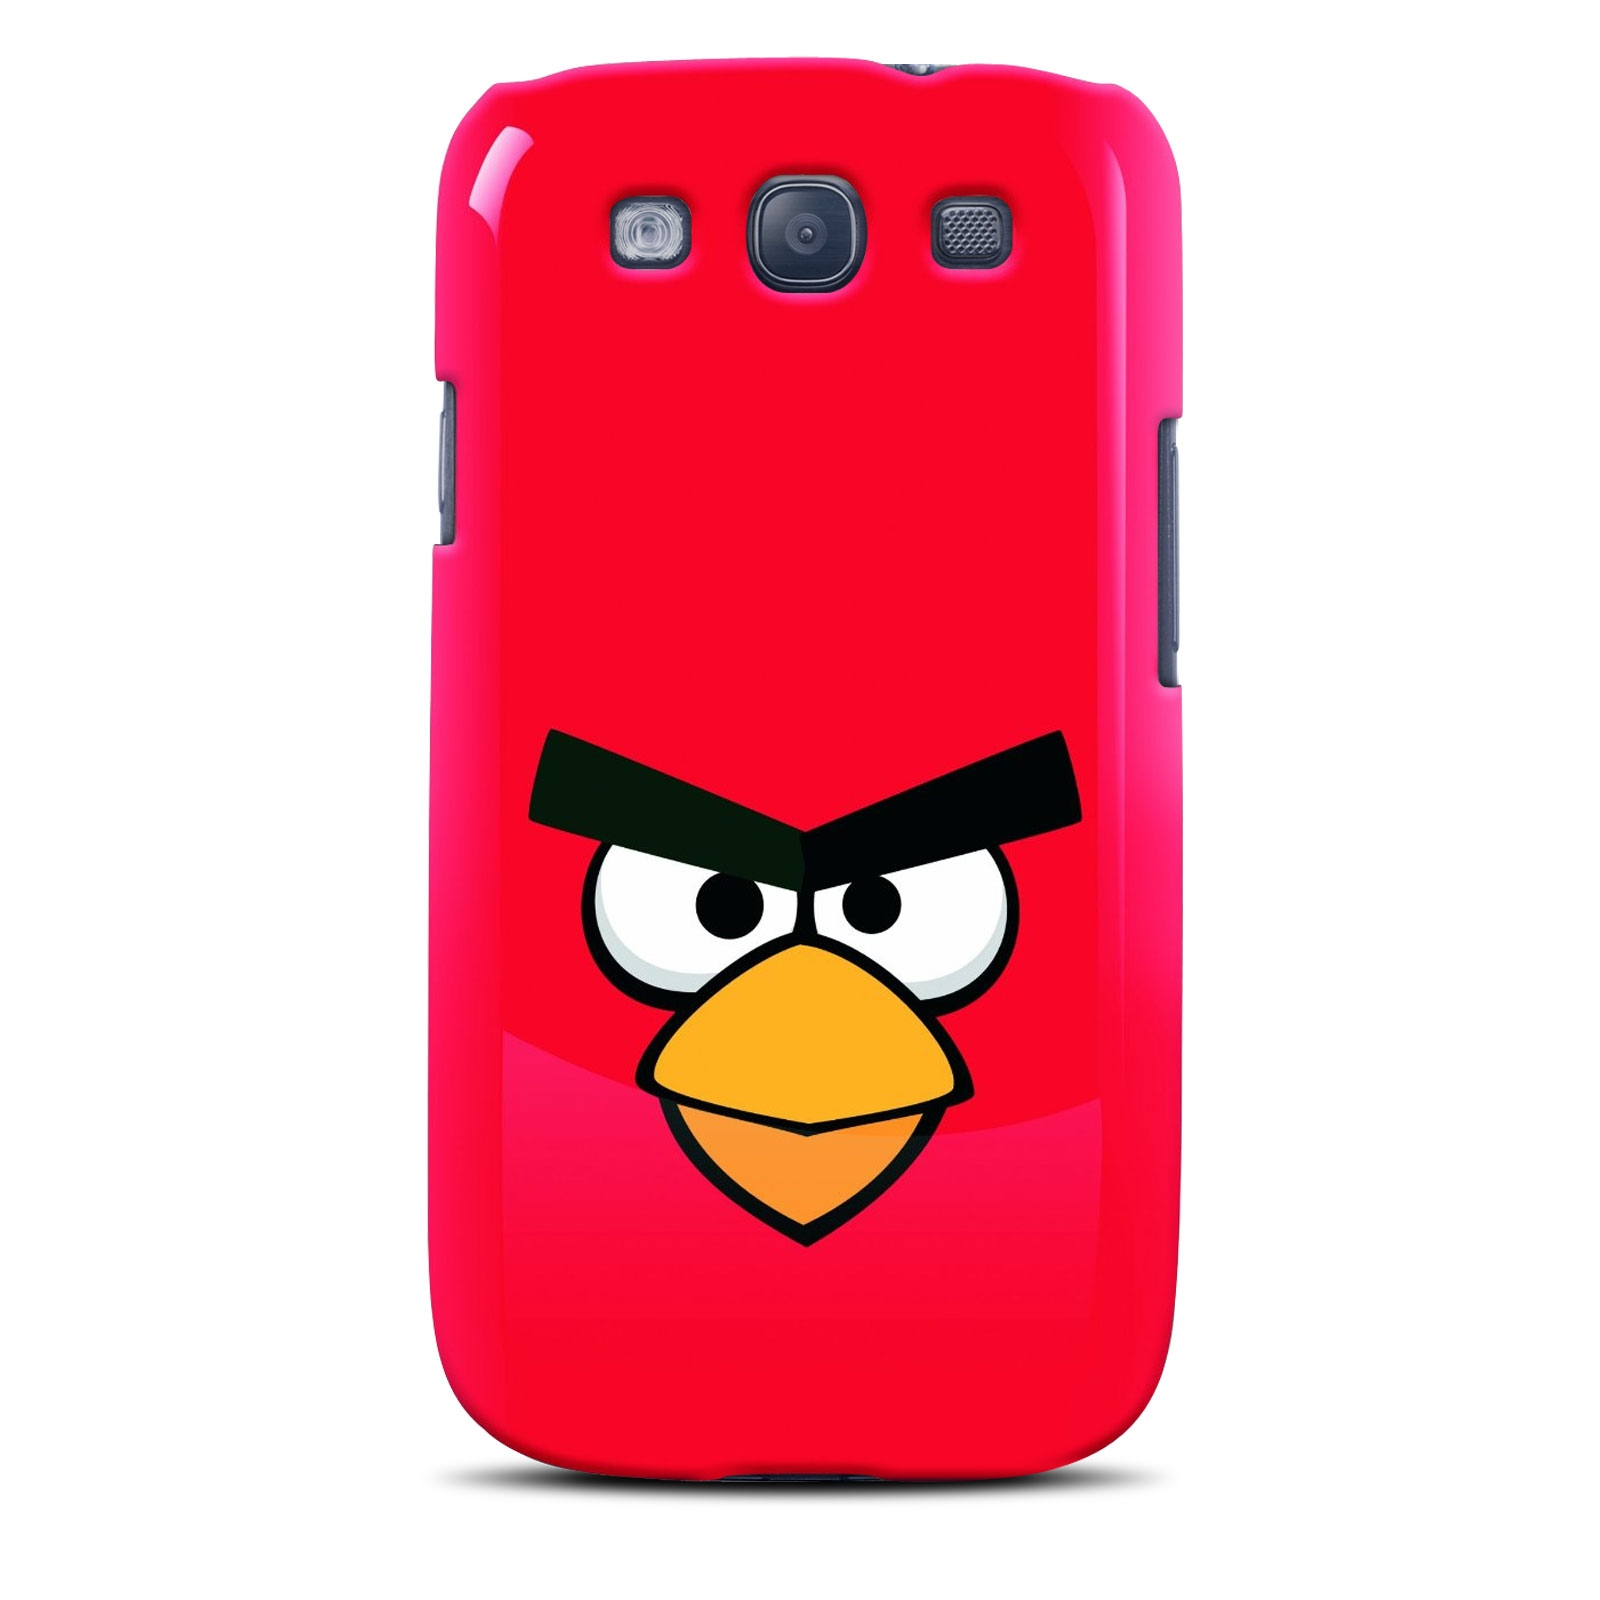 Coque angry birds gear4 red bird rouge galaxy s3 - Angry birds rouge ...